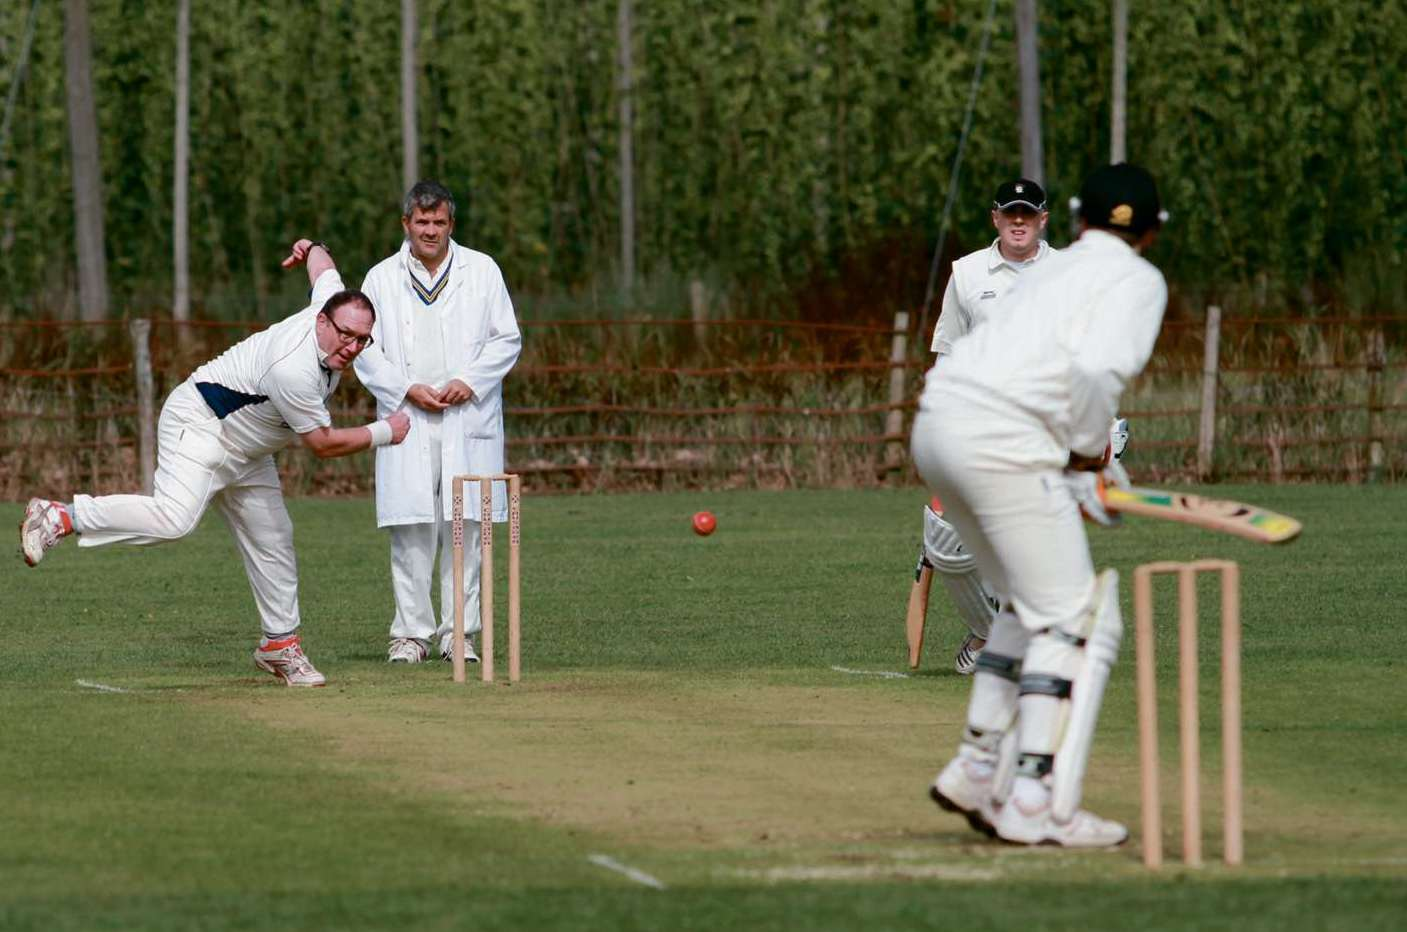 Mark Evans, who took five wickets in Knighton-on-Teme's seven-wicket battering of Weobley.